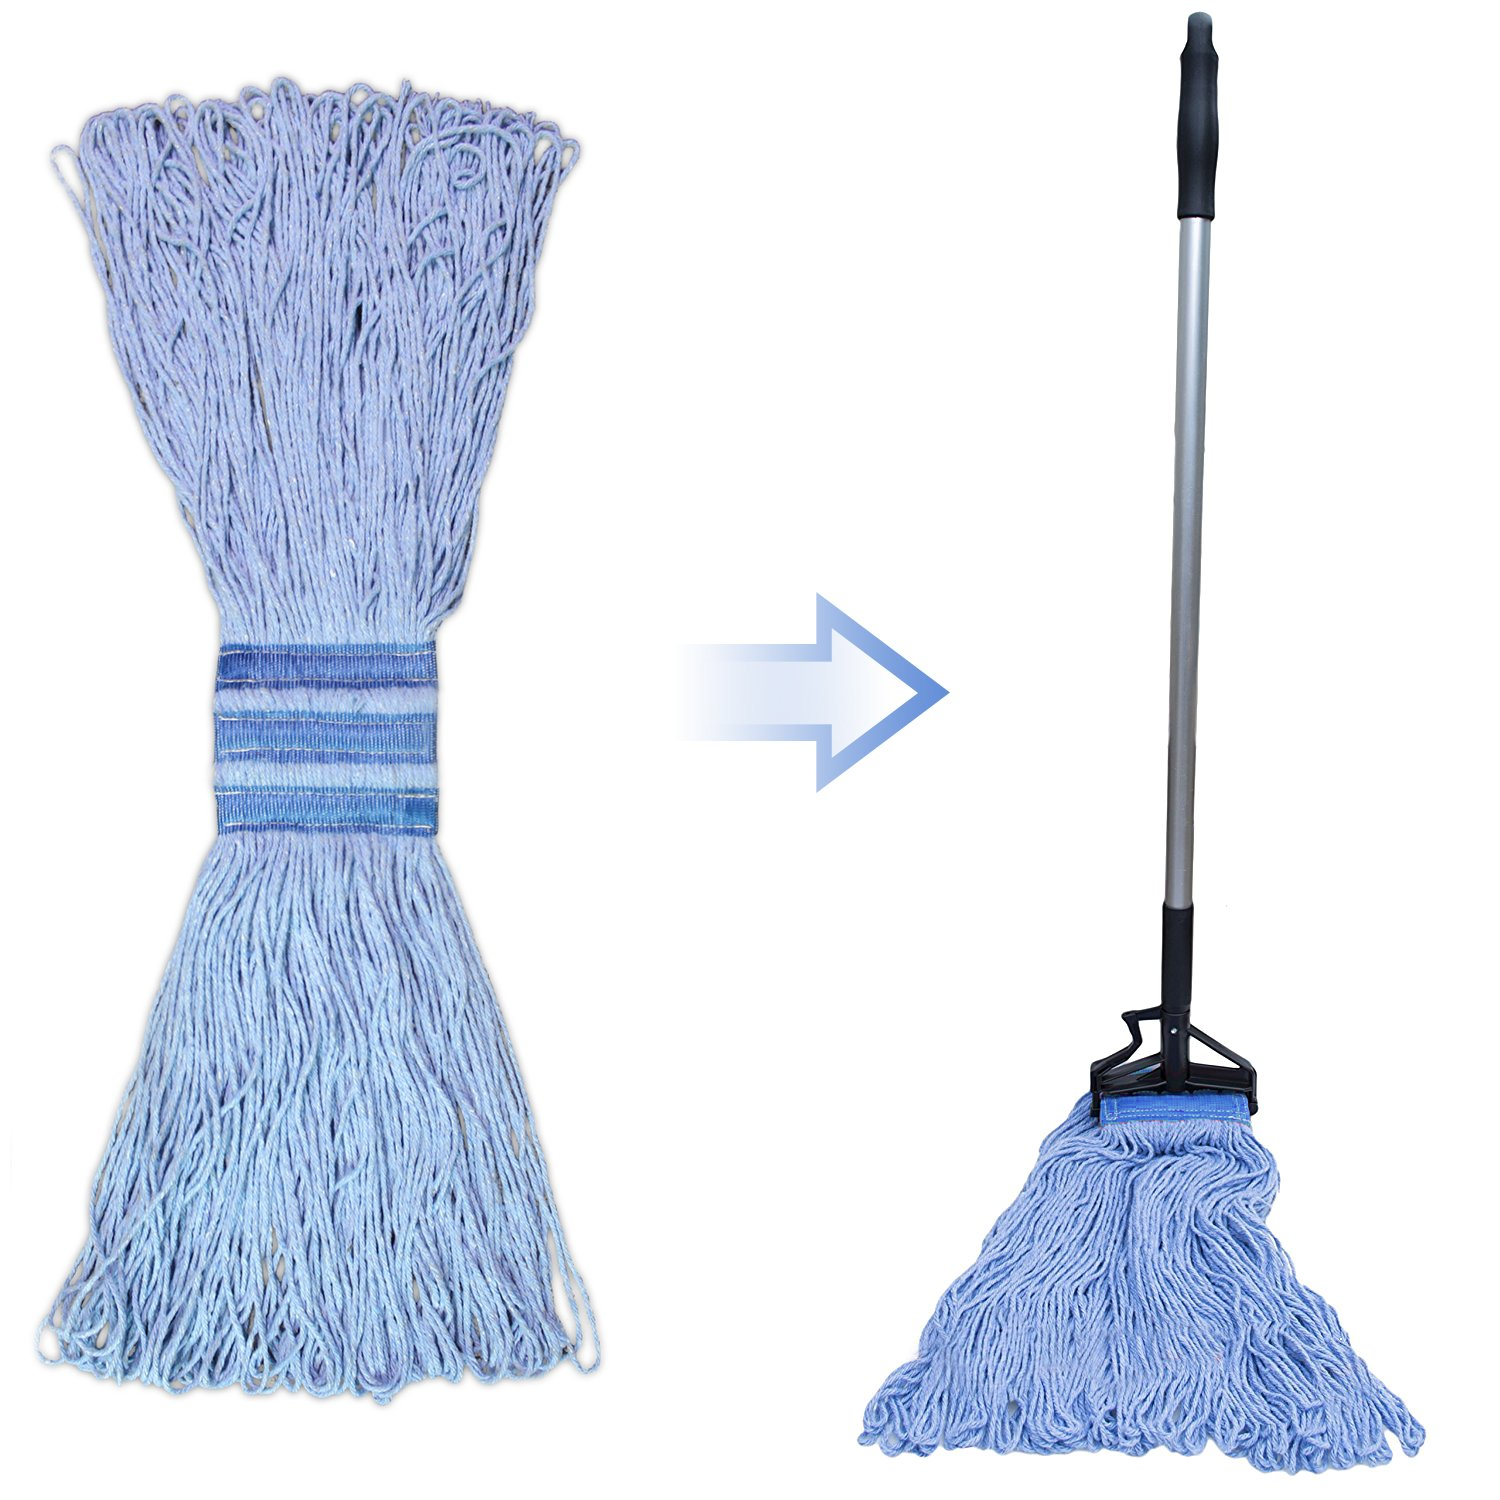 Bonison 24 oz Cotton Easy Wring Saddle Mop Head Refill, 24 oz Heavy Duty Looped-End String Swinger Style Replacement Mop Head, for Home, Commercial, and Industrial Use (Blue, 24 oz) by Bonison (Image #3)